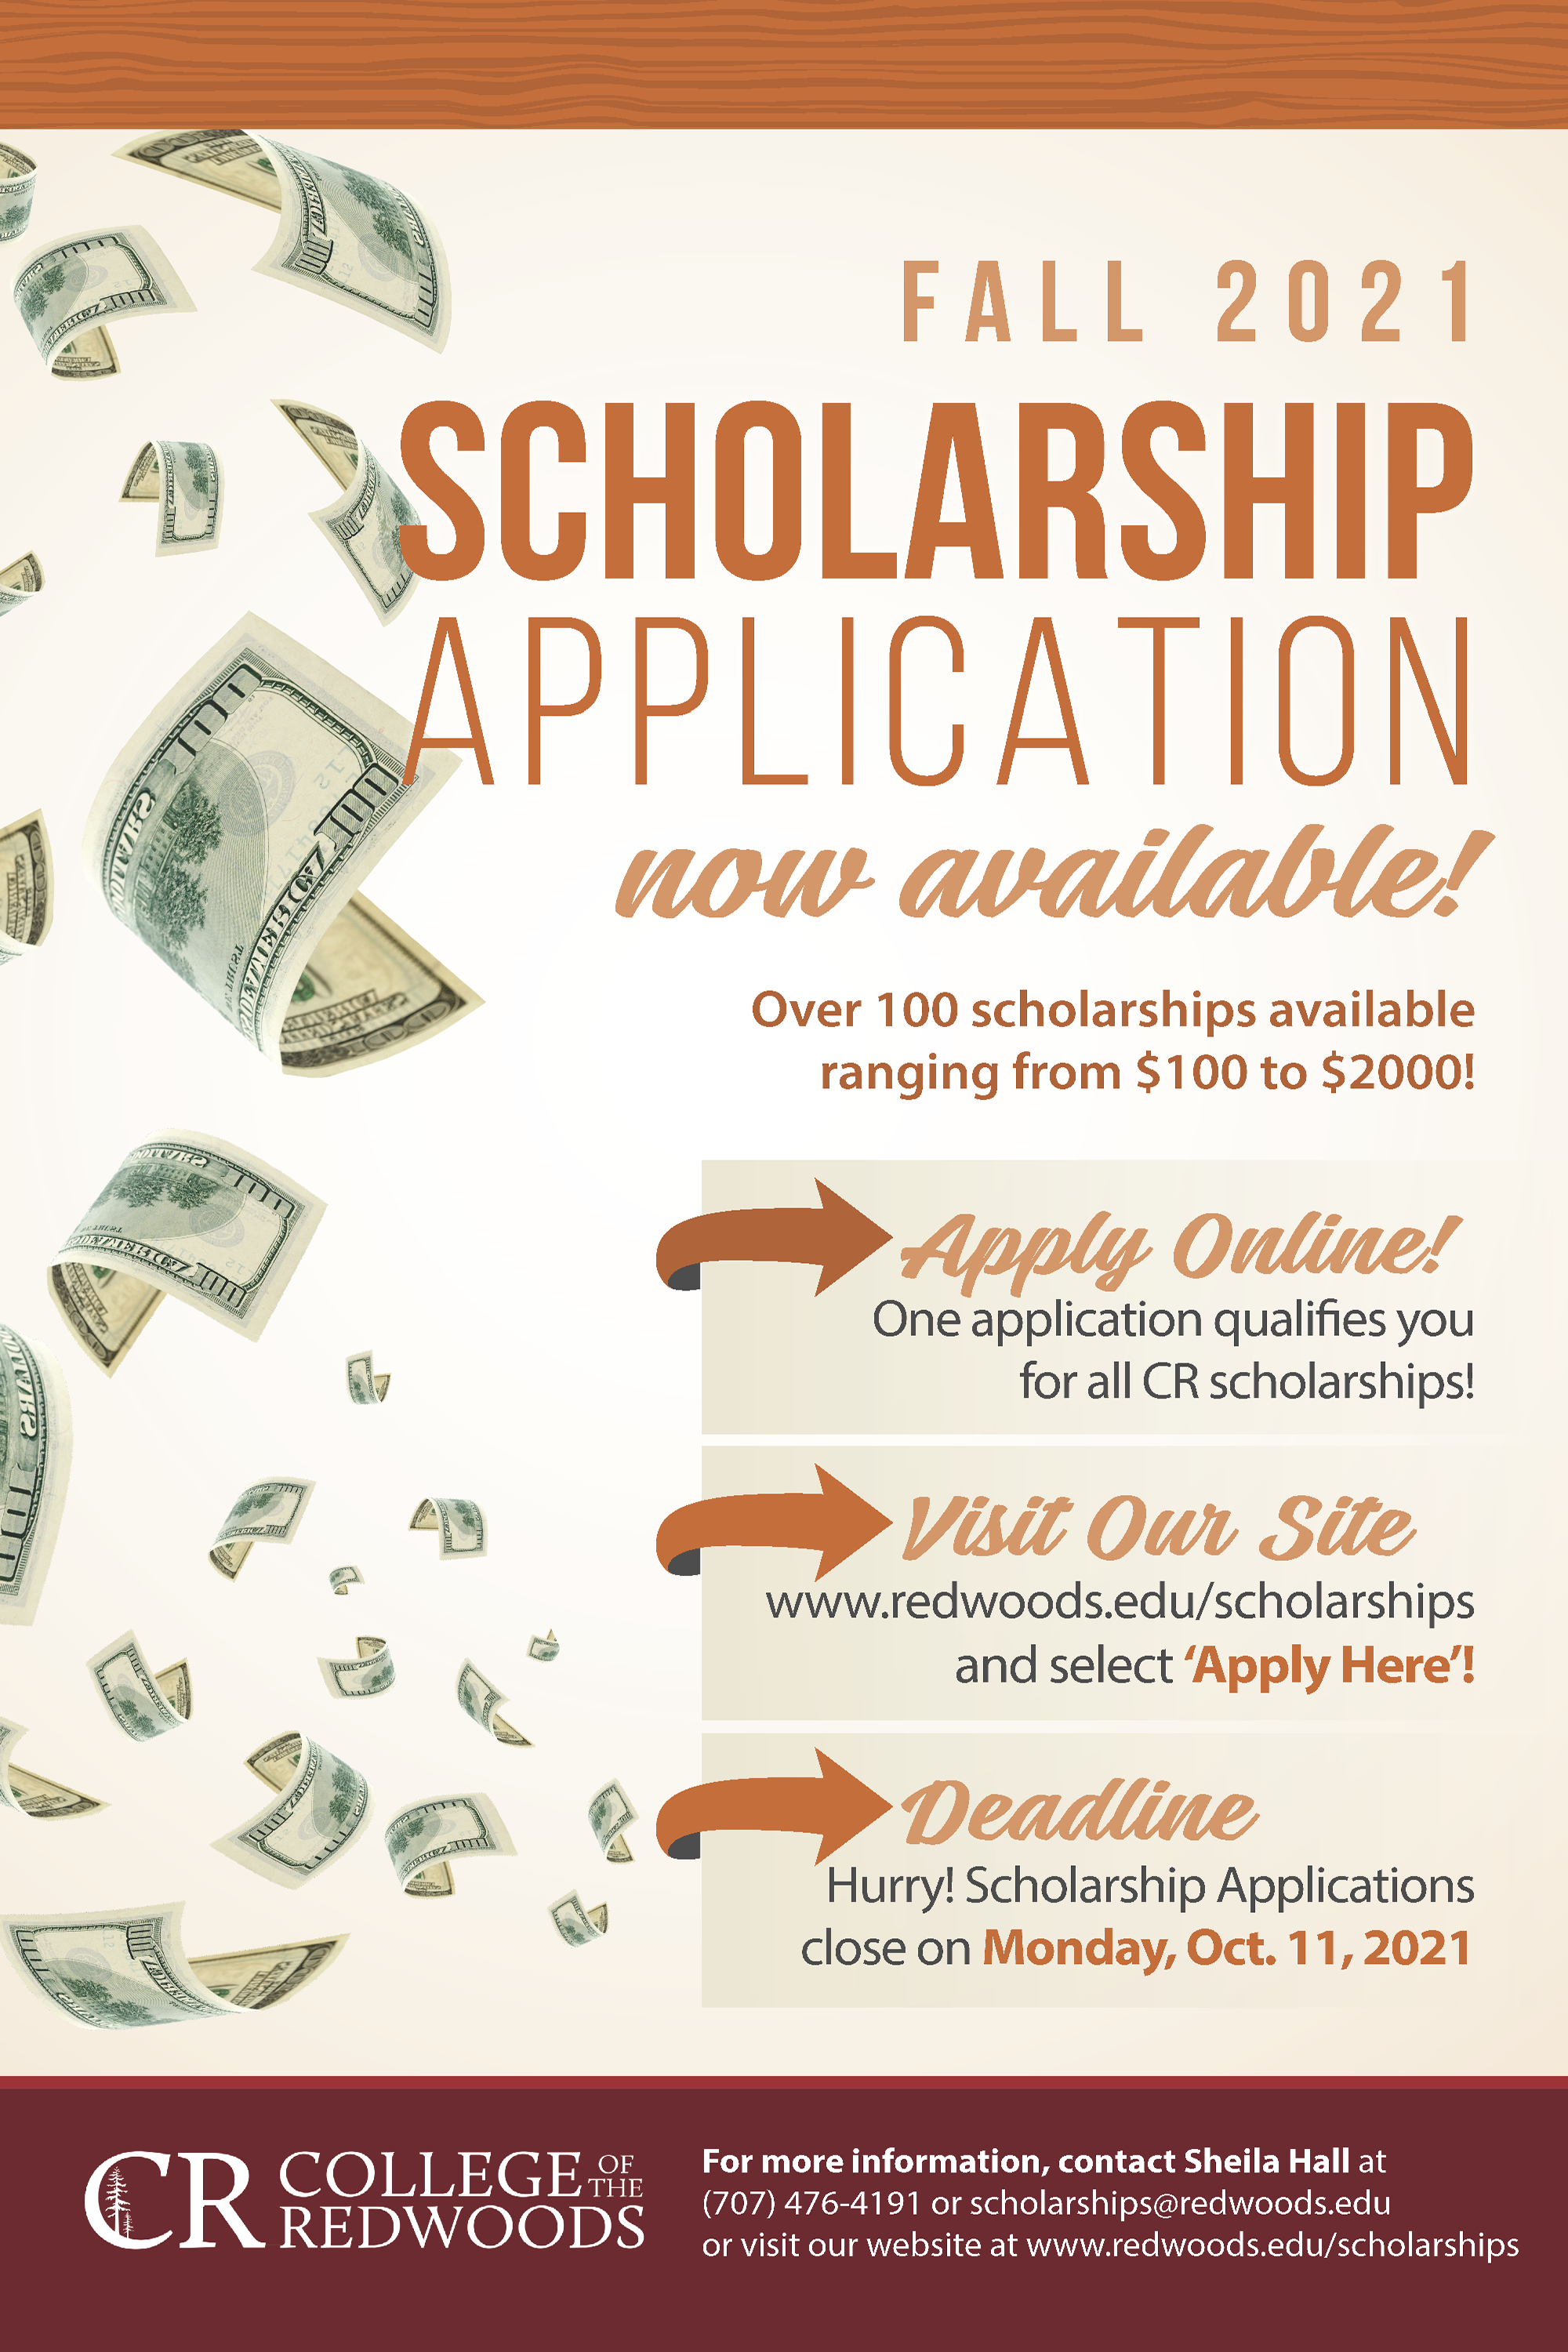 Fall 2021 Scholarship Application available now